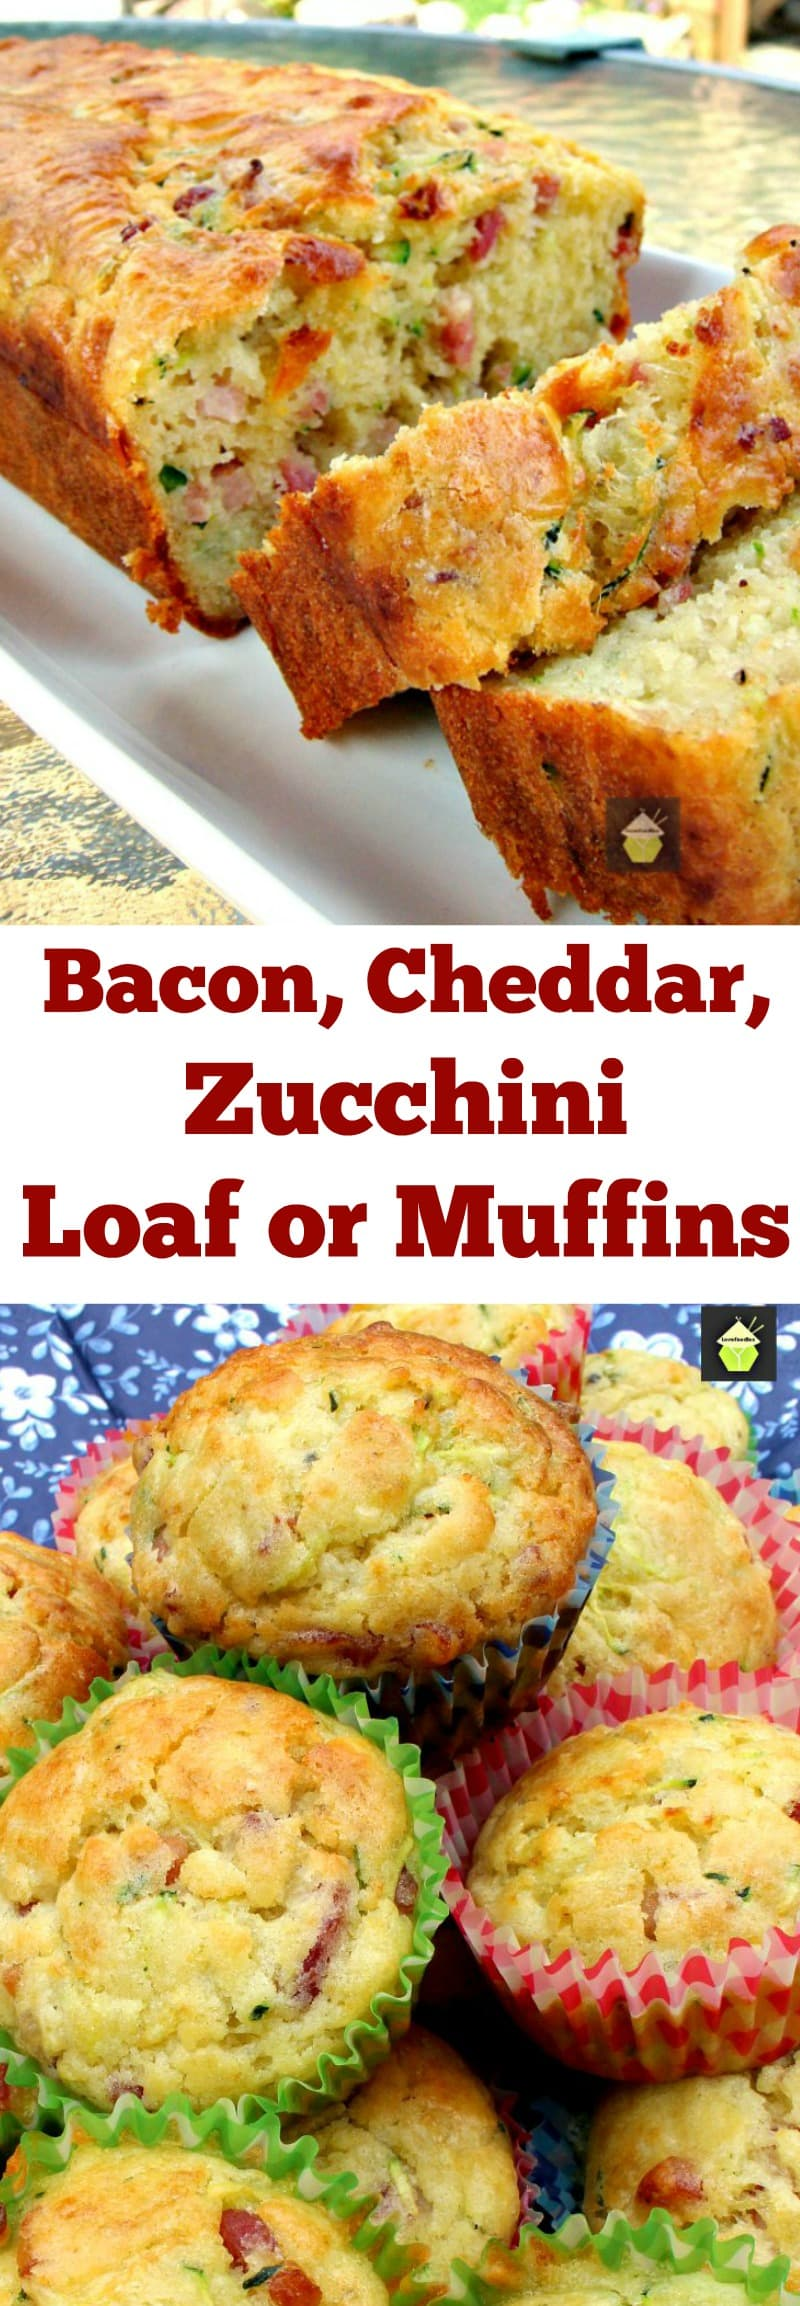 Bacon, Cheddar, Zucchini Bread or Muffins, great for parties, pot ...